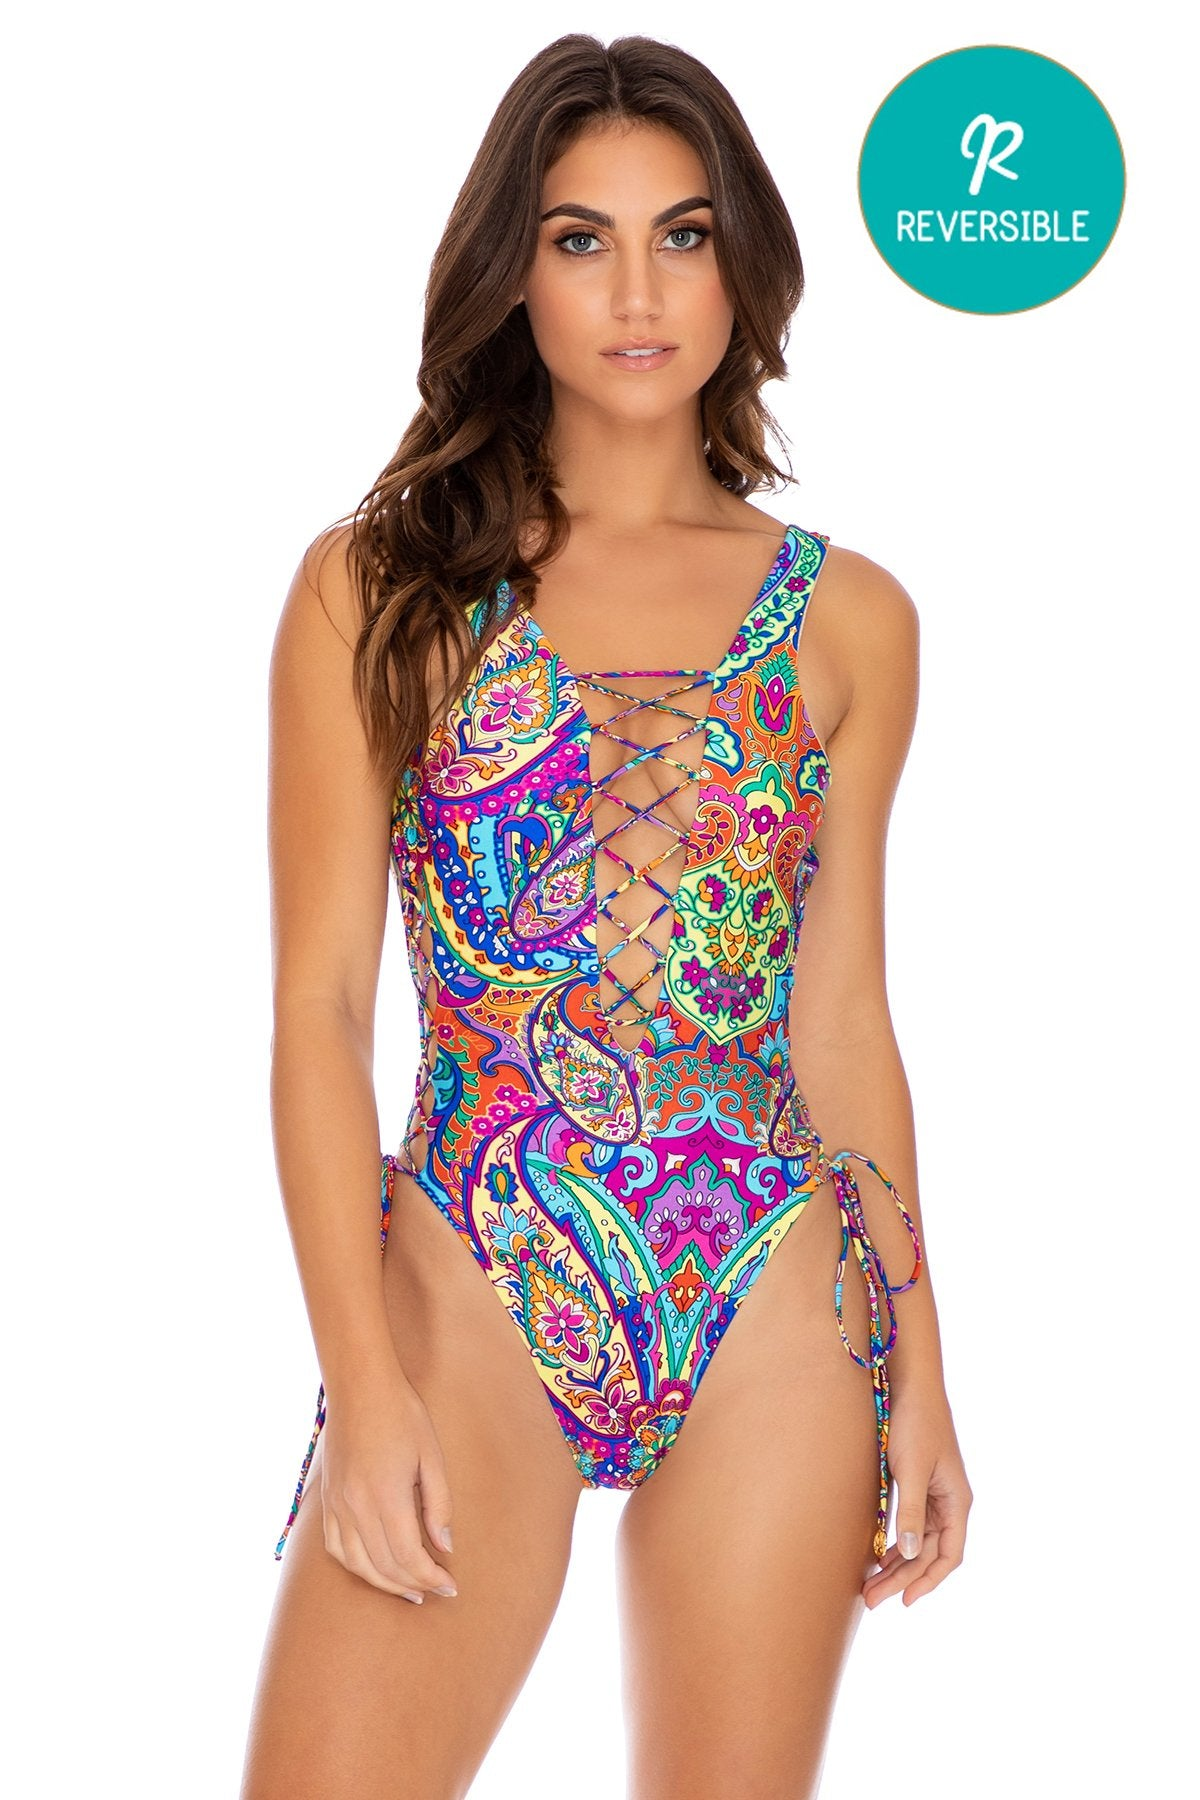 RETRO CRUSH - Open Side One Piece Bodysuit • Multicolor